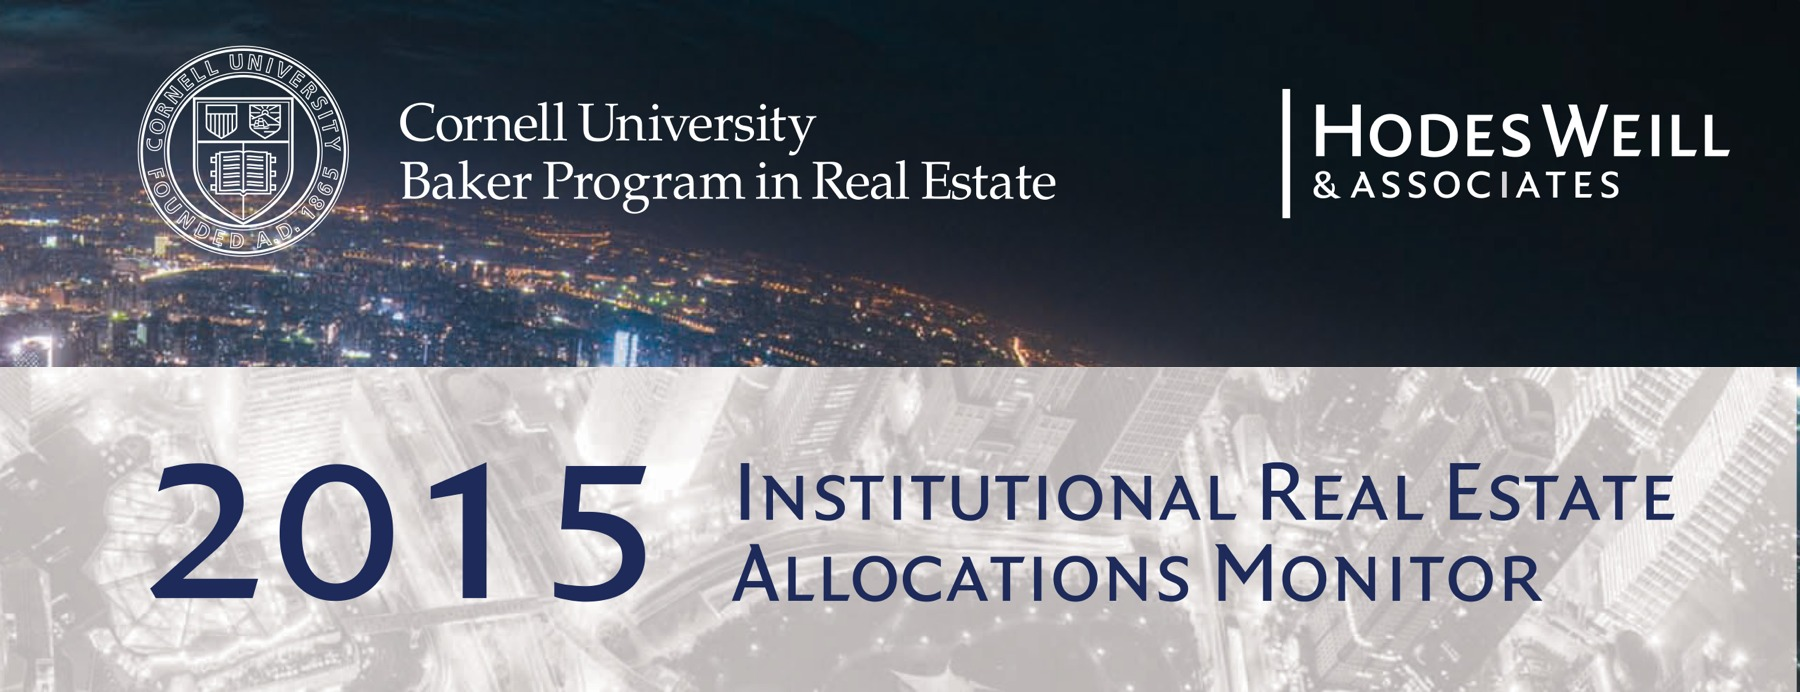 Cornell-Hodes Weill 2015 Institutional Real Estate Allocations Monitor Released